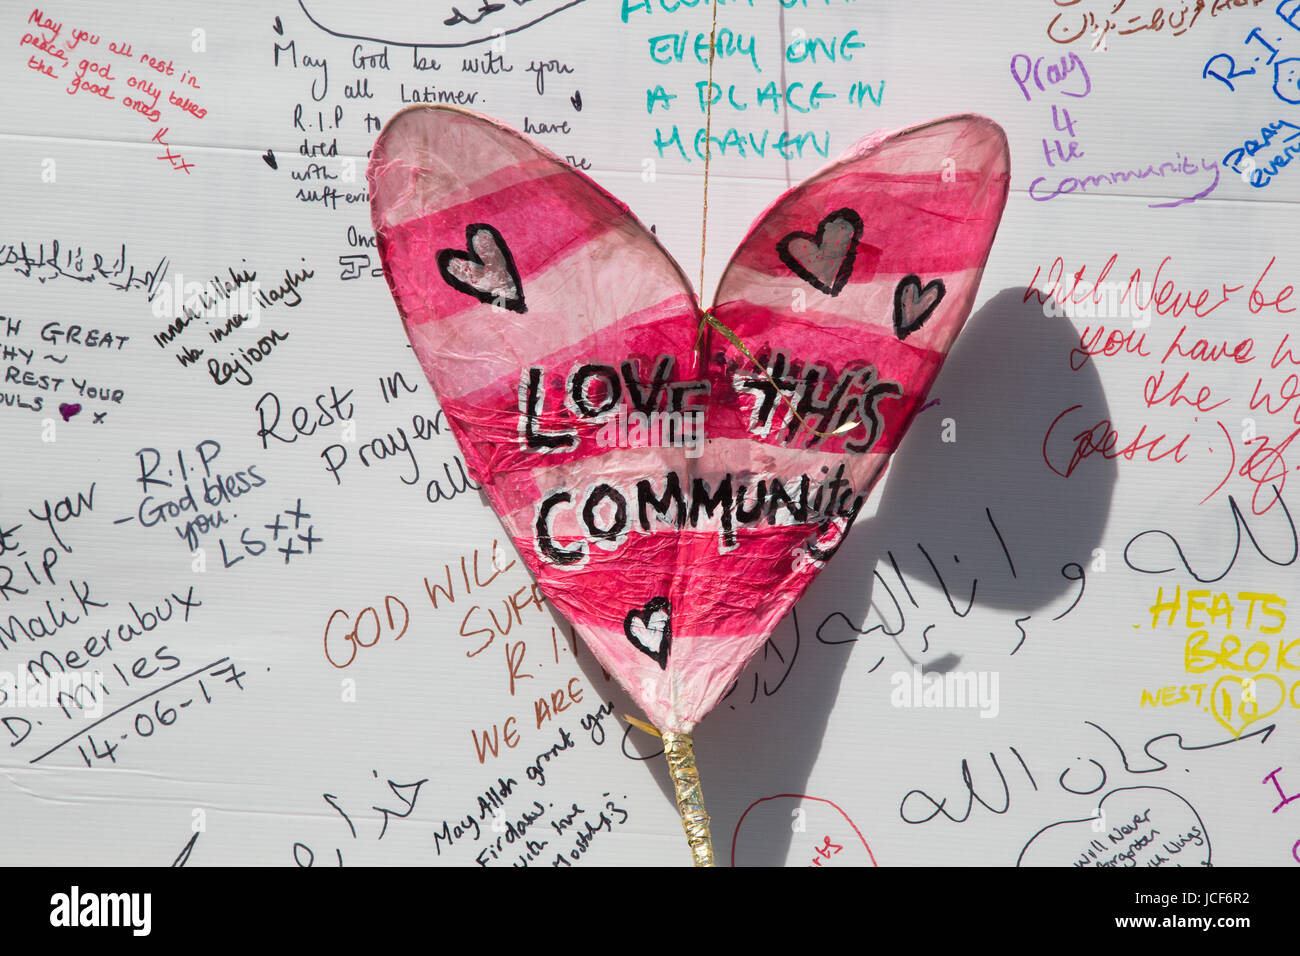 London, UK. 15th June, 2017. Messages of condolence for the victims on a wall near to the site of the Grenfell Tower - Stock Image